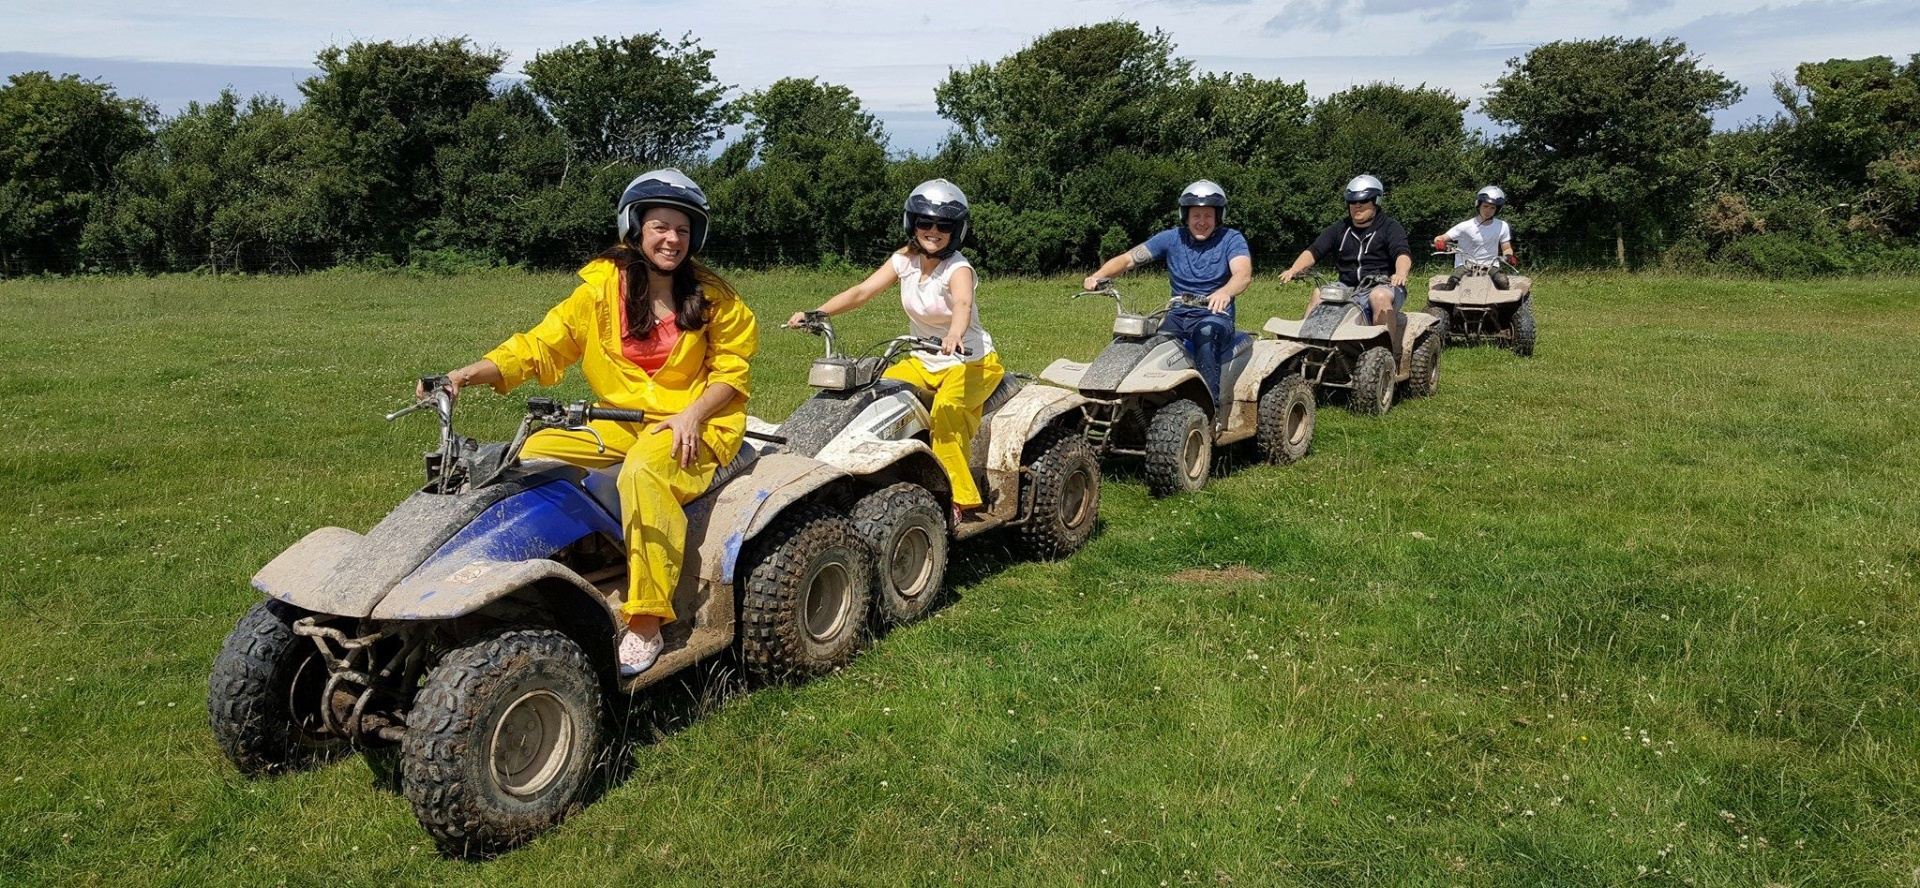 75 Minute Quad Biking Experience - Devon-3